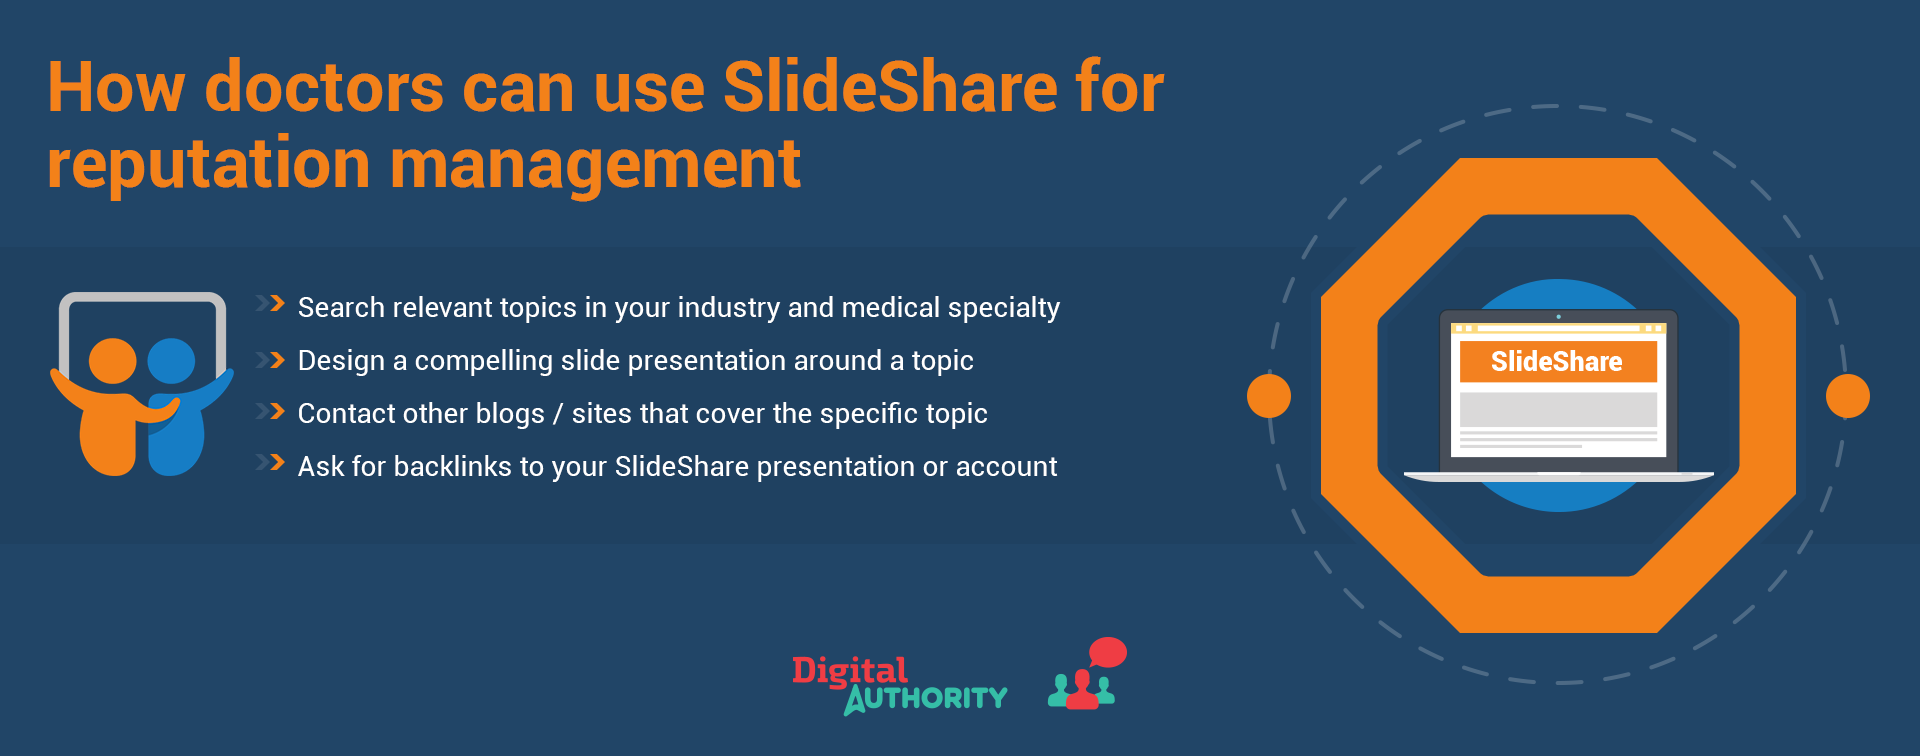 Infographic explaining how doctors can use SlideShare for reputation management.